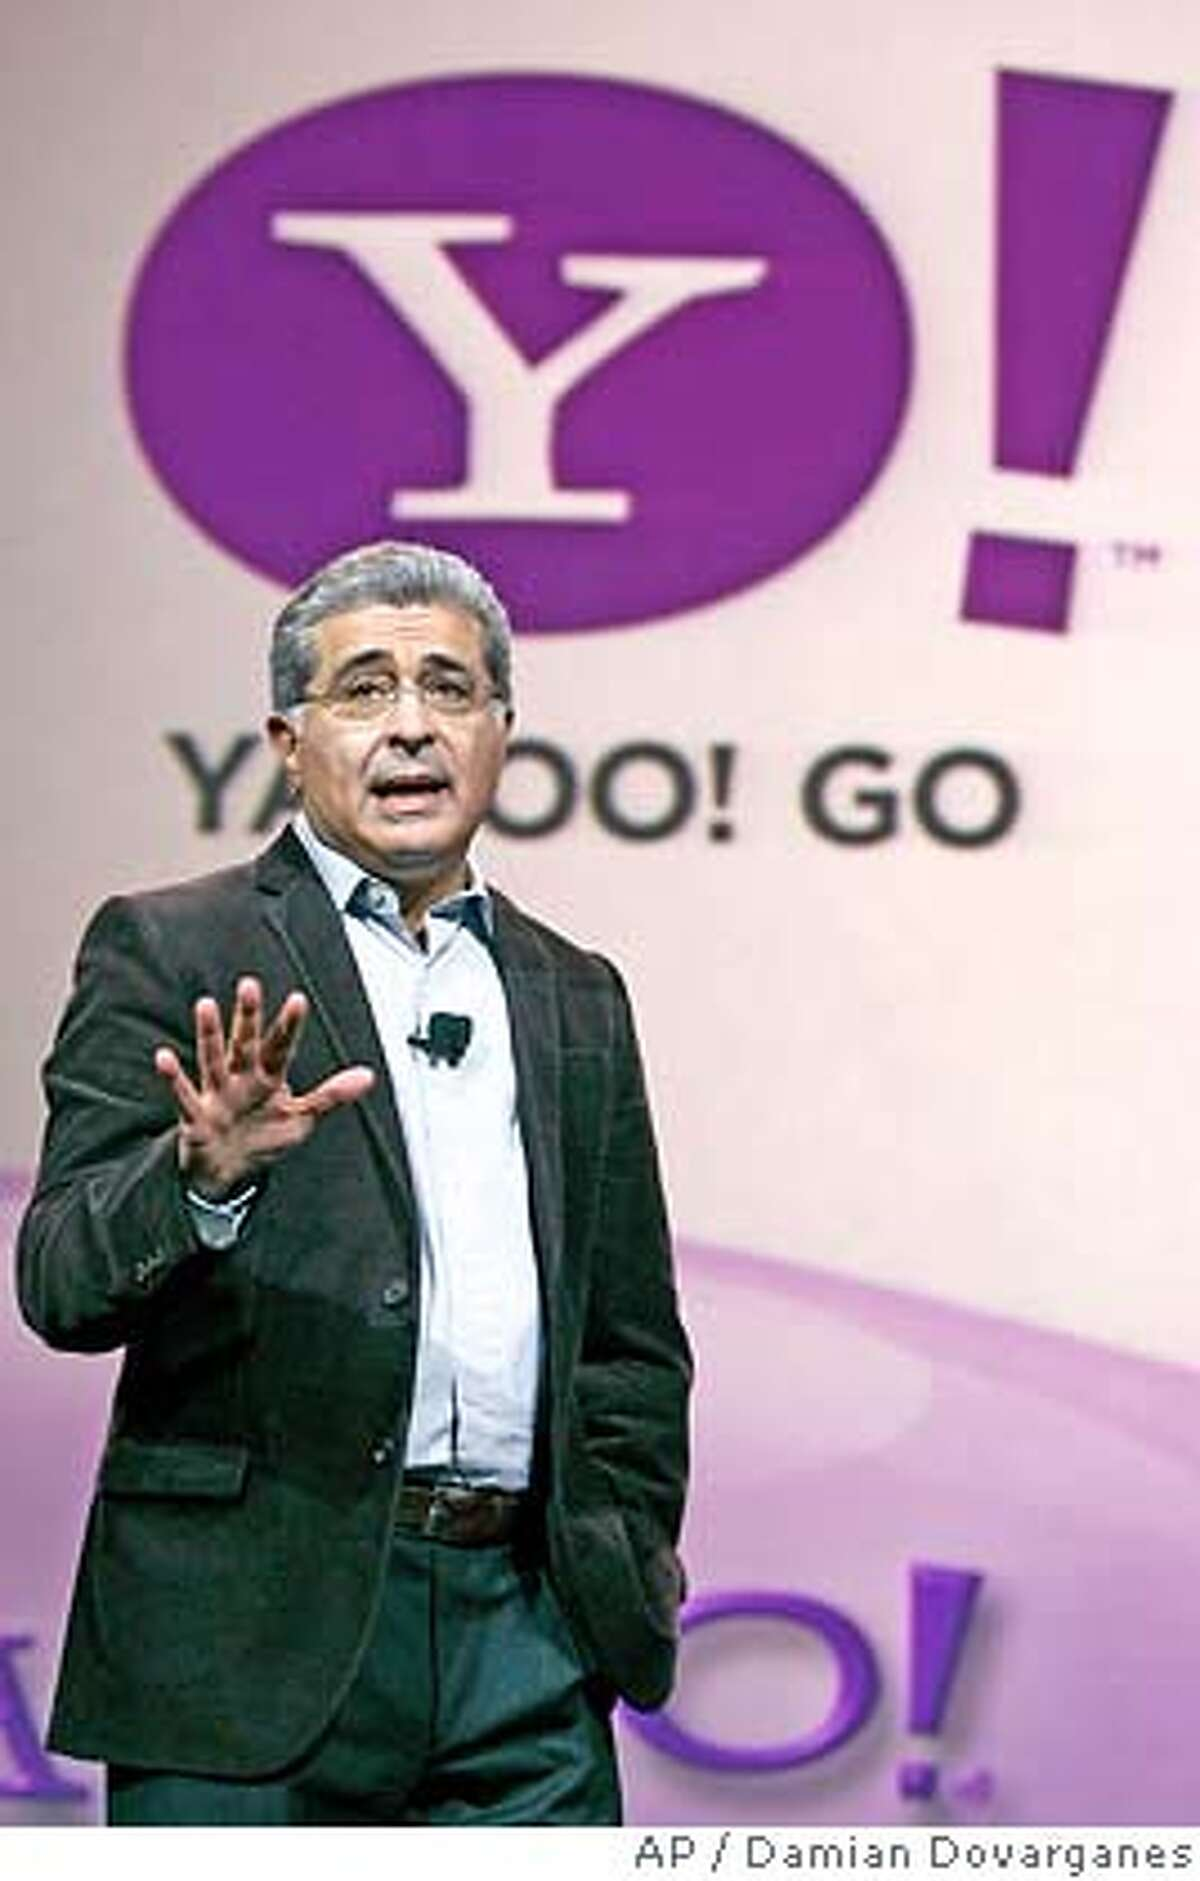 **FILE** Yahoo CEO Terry Semel delivers a speech in this file photo, Friday, Jan. 6, 2006 at the International Consumer Electronics Show, CES, in Las Vegas. Semel ended his six-year stint as chief executive officer Monday, June 18, 2007, and will hand over the reins to co-founder Jerry Yang in the Internet icon's latest attempt to regain investor confidence. Semel, 64, will remain chairmain in a non-executive role. (AP Photo/Damian Dovarganes)